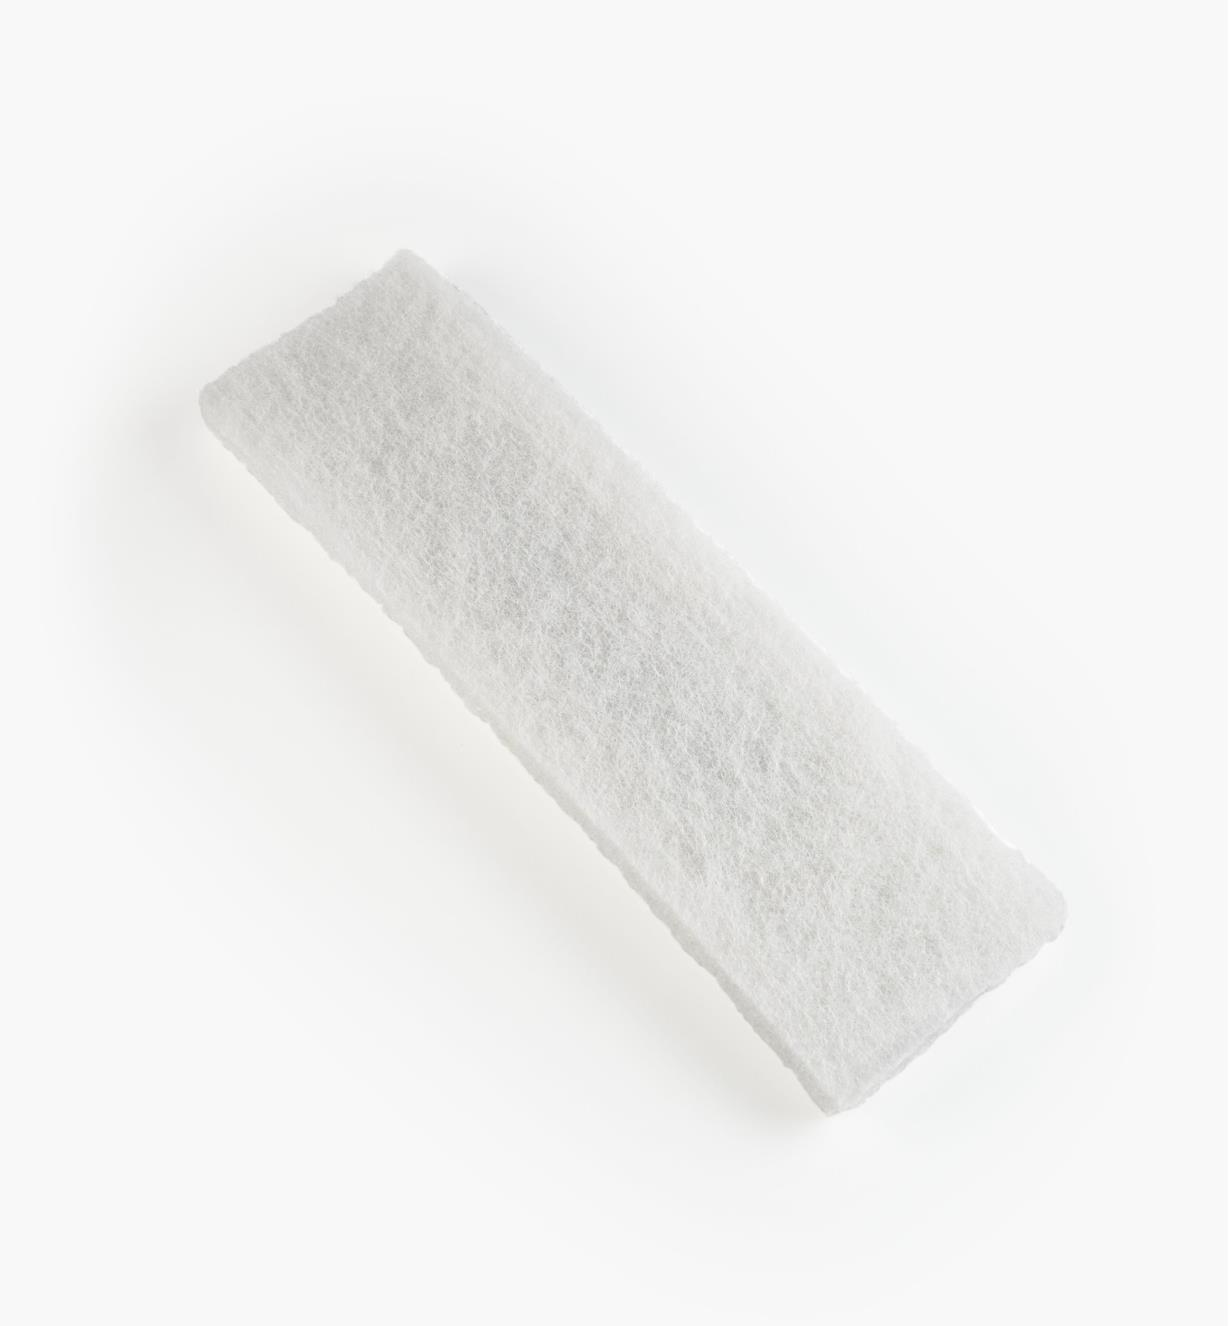 54K0701 - 3M Rubbing Pad, Superfine